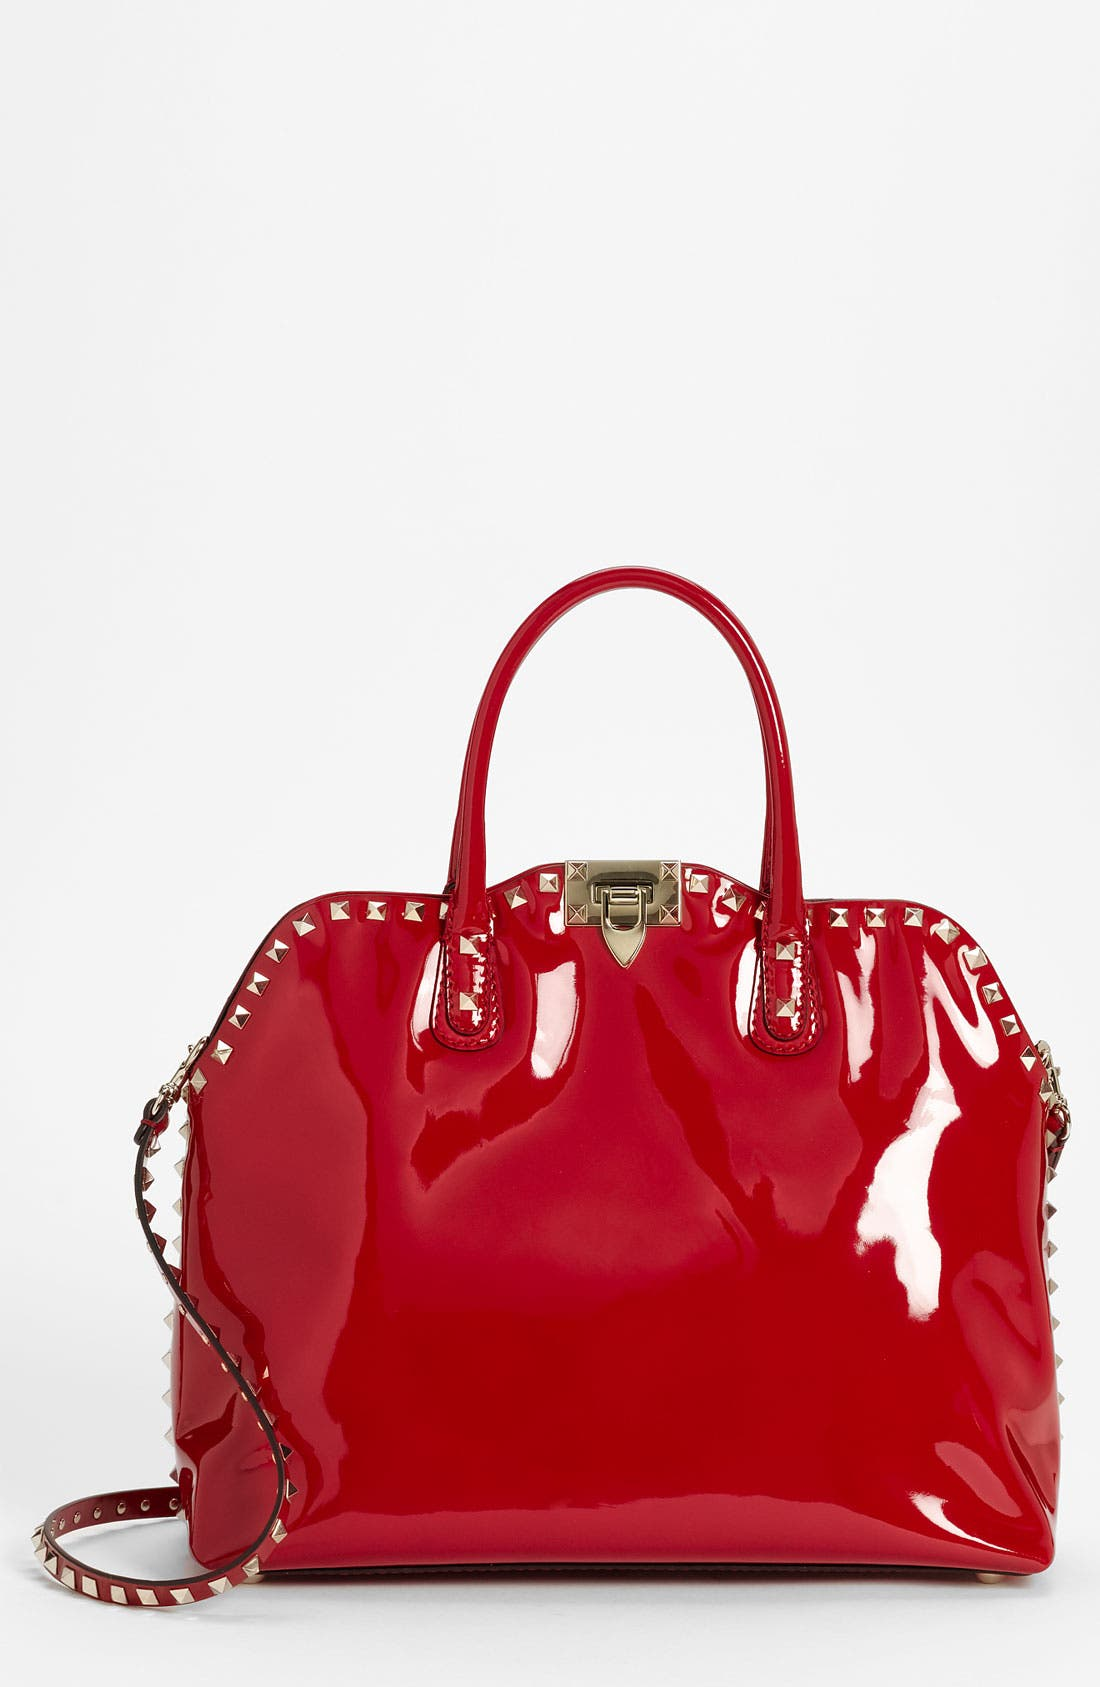 Main Image - Valentino 'Rockstud' Patent Leather Dome Handbag